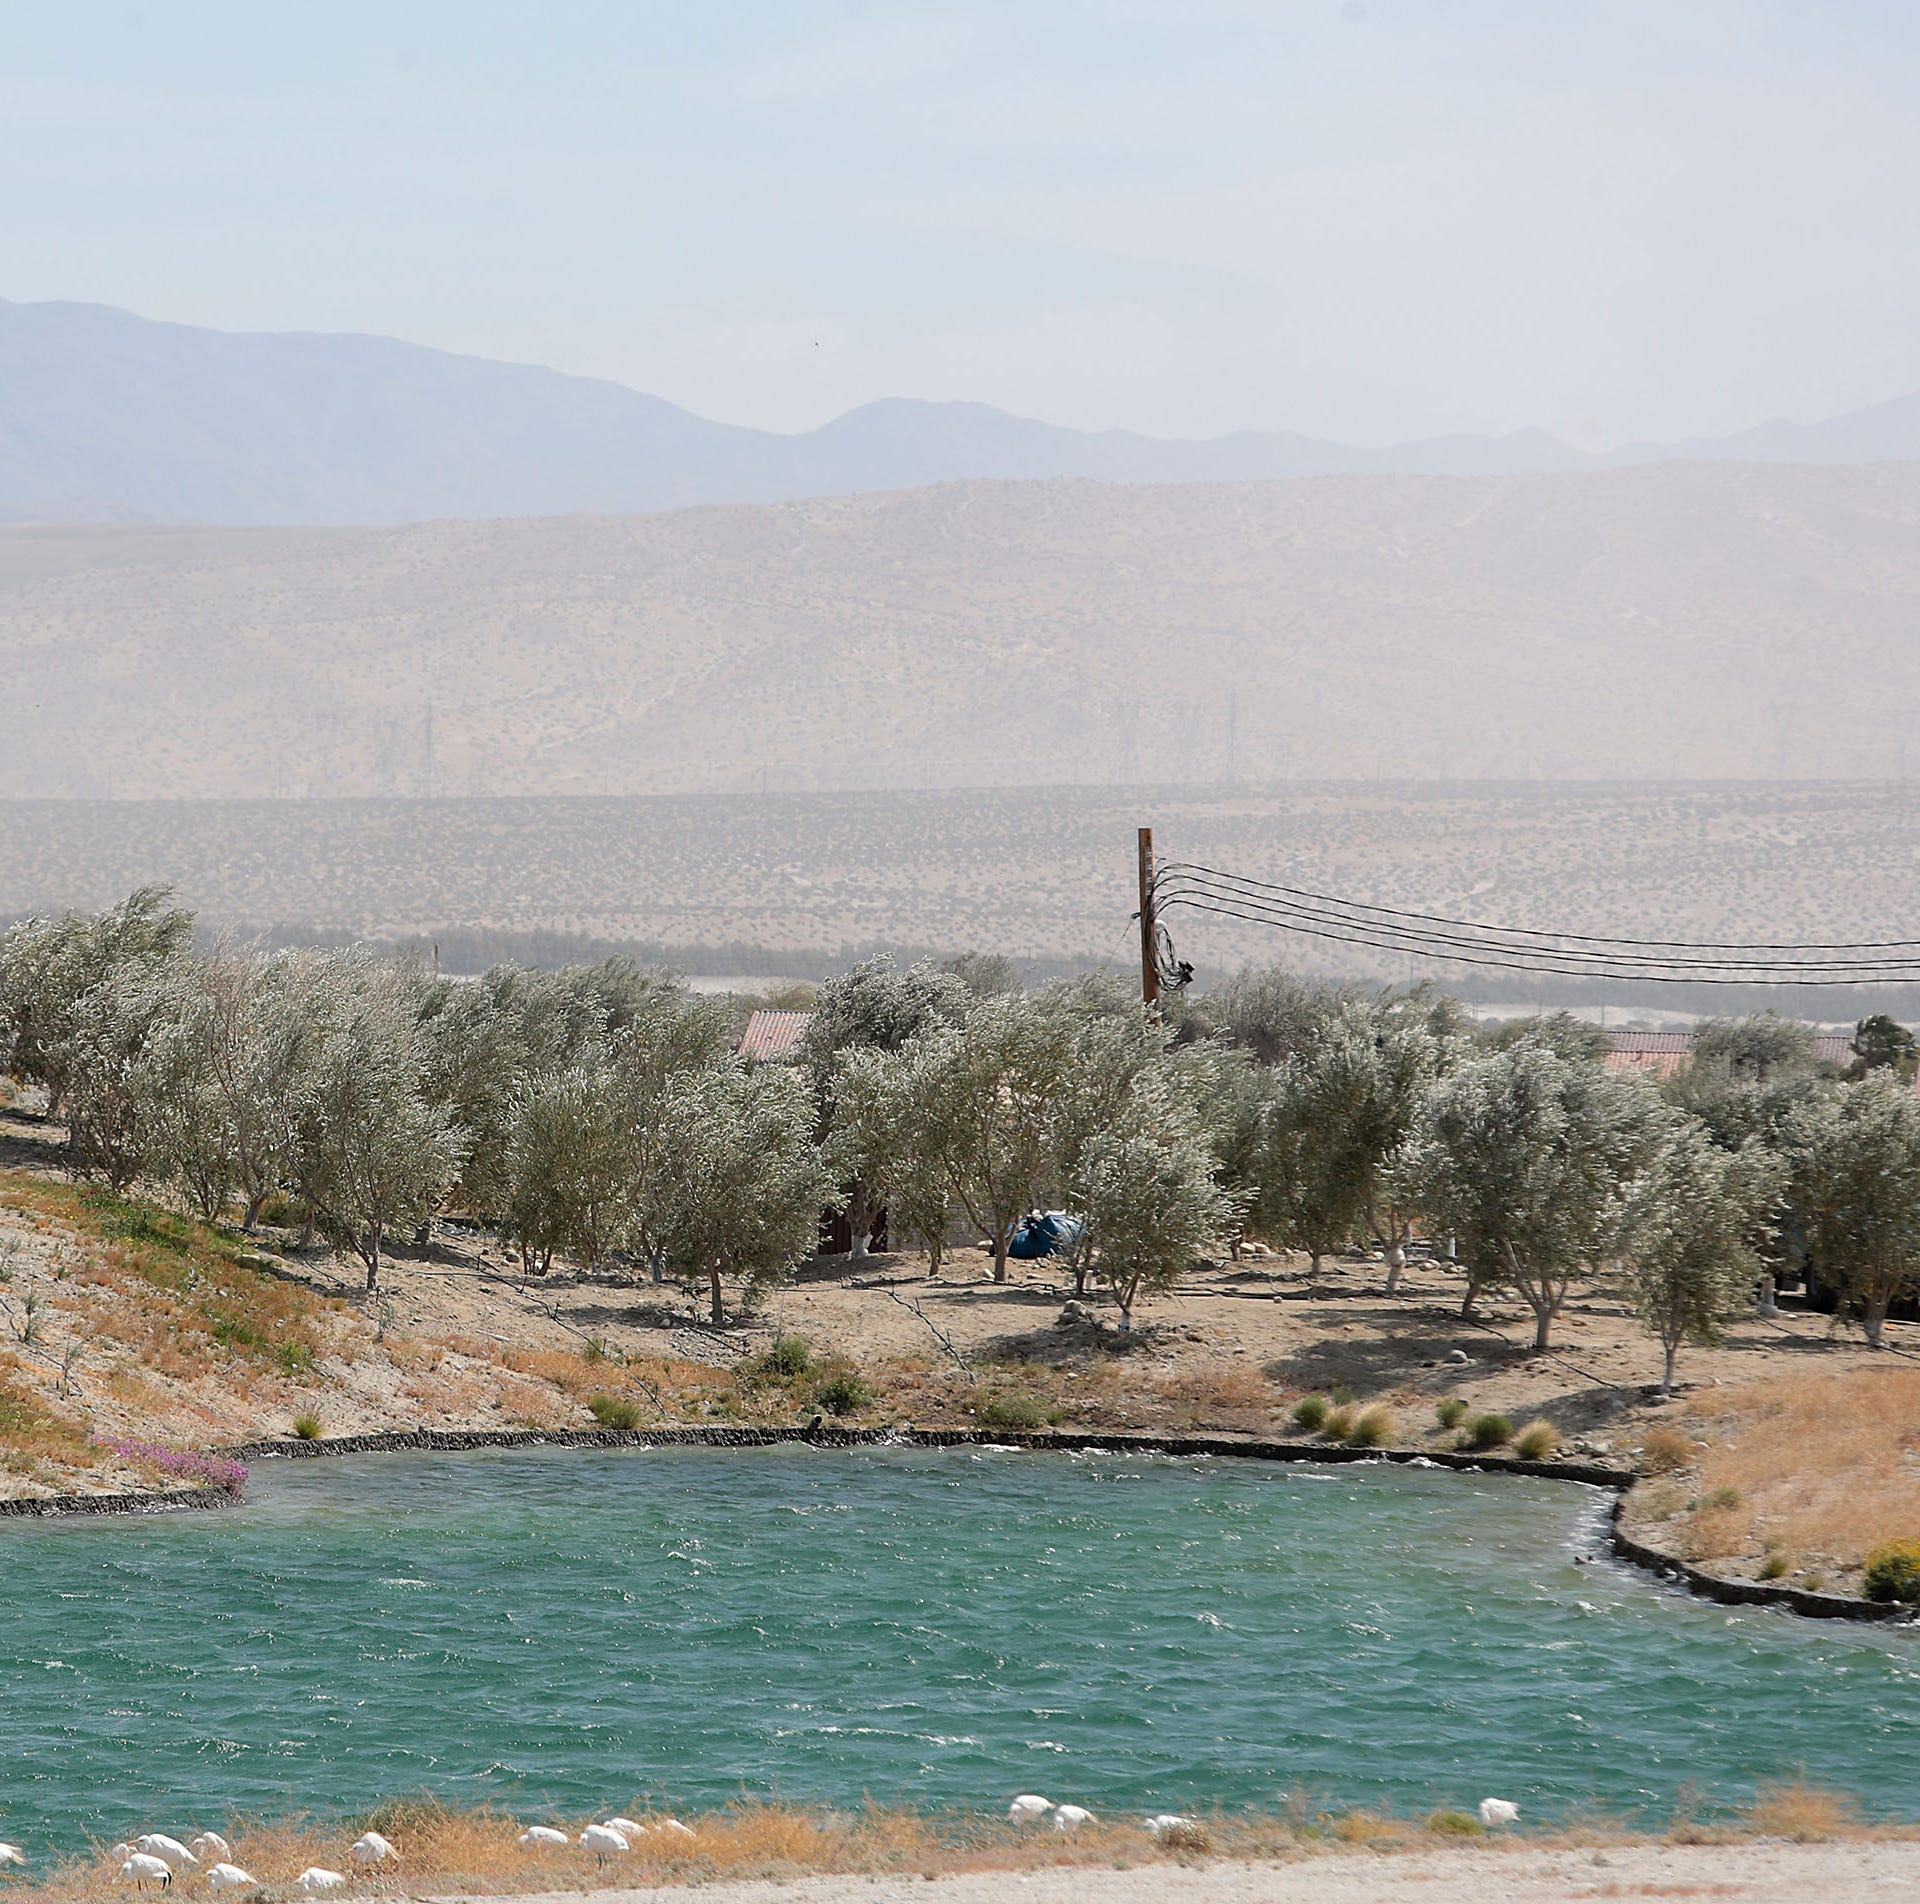 Palm Springs project's olive grove feature raises concern for allergy sufferer